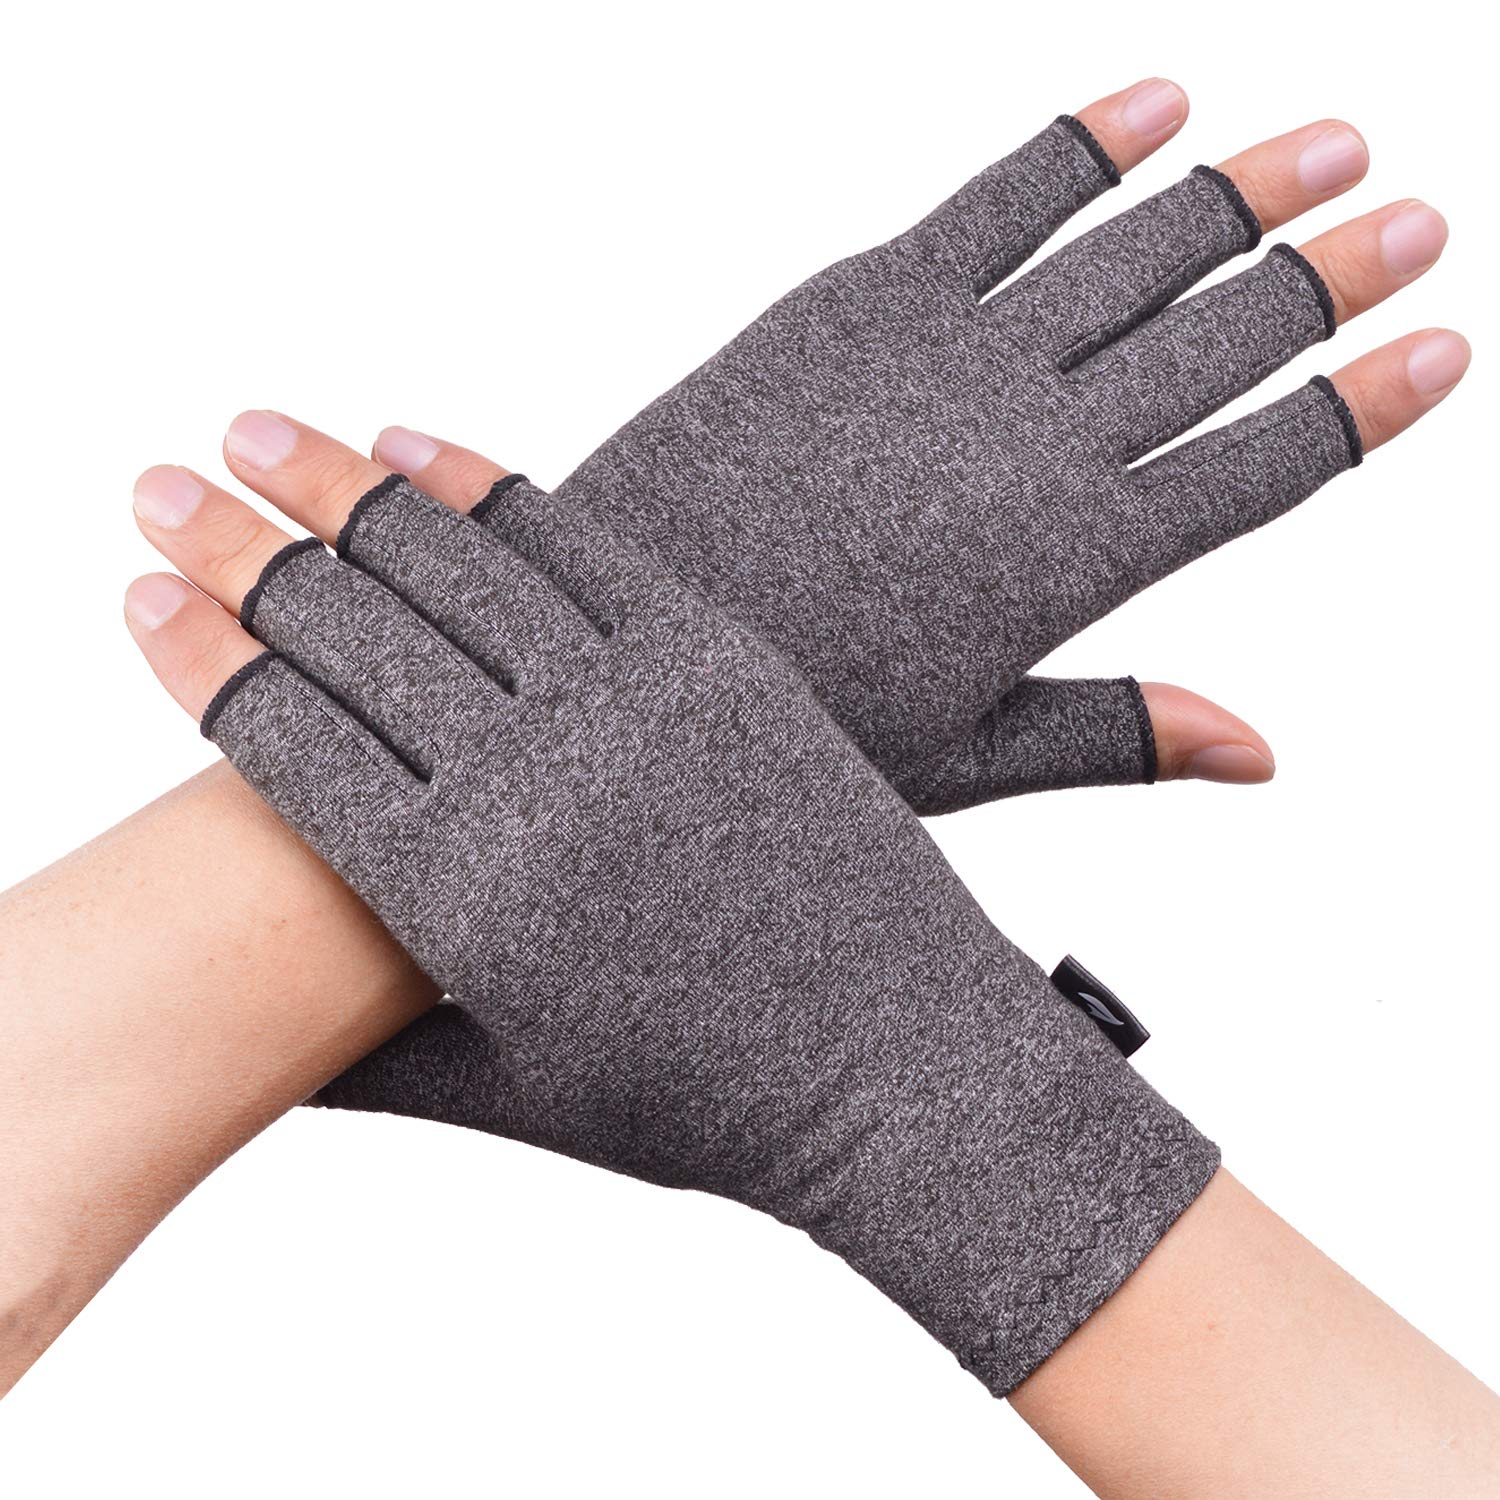 Banillue Compression Arthritis Gloves, Fingerless Hand Gloves for Rheumatoid & Osteoarthritis - Joint Pain and Carpel Tunnel Relief-Men & Women -Small